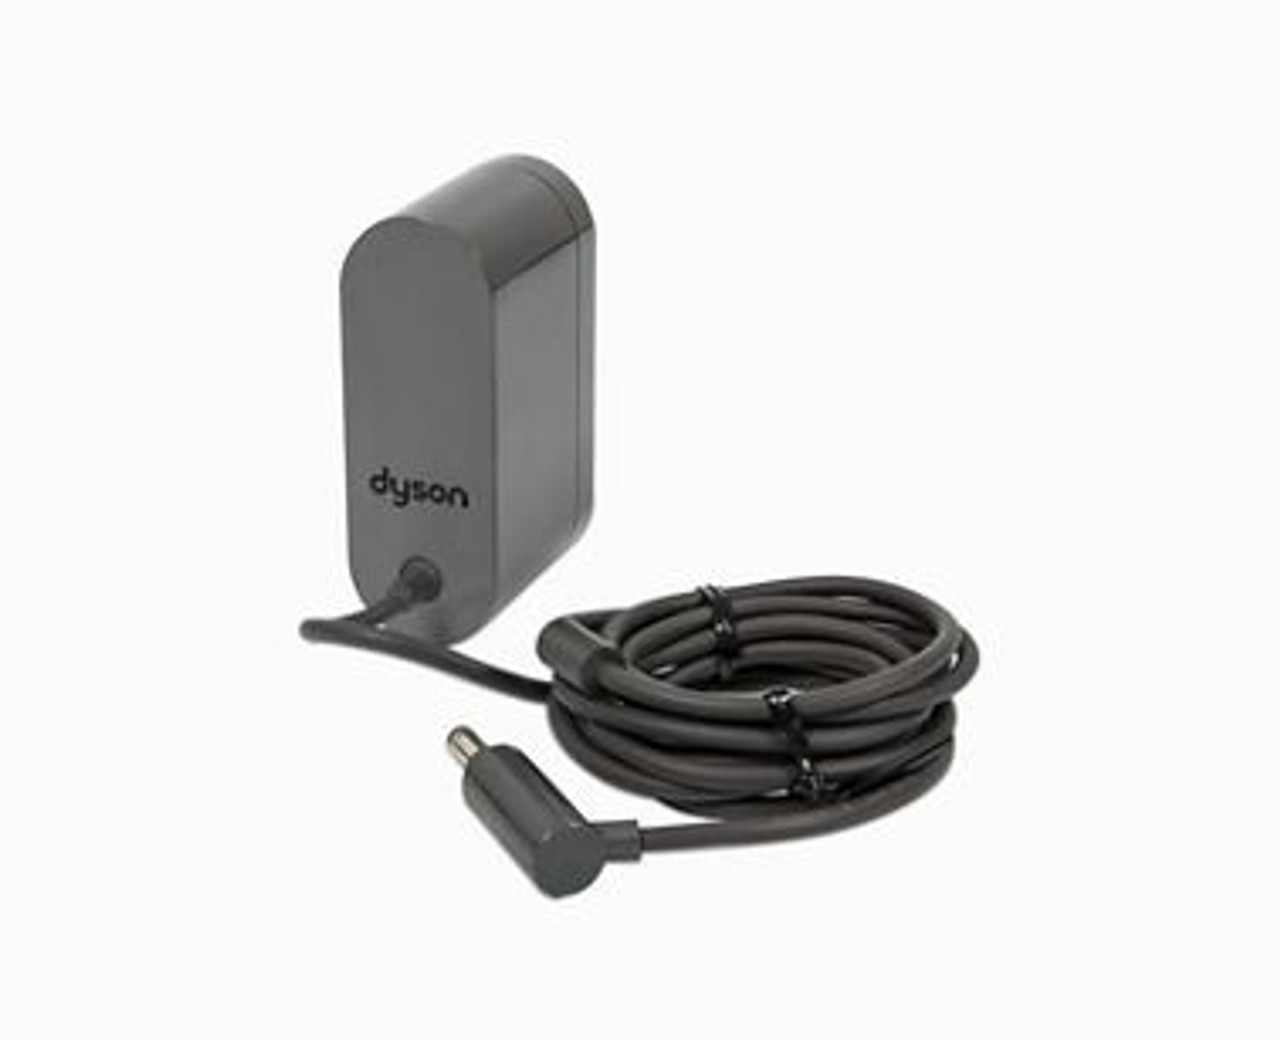 dyson v6 charger